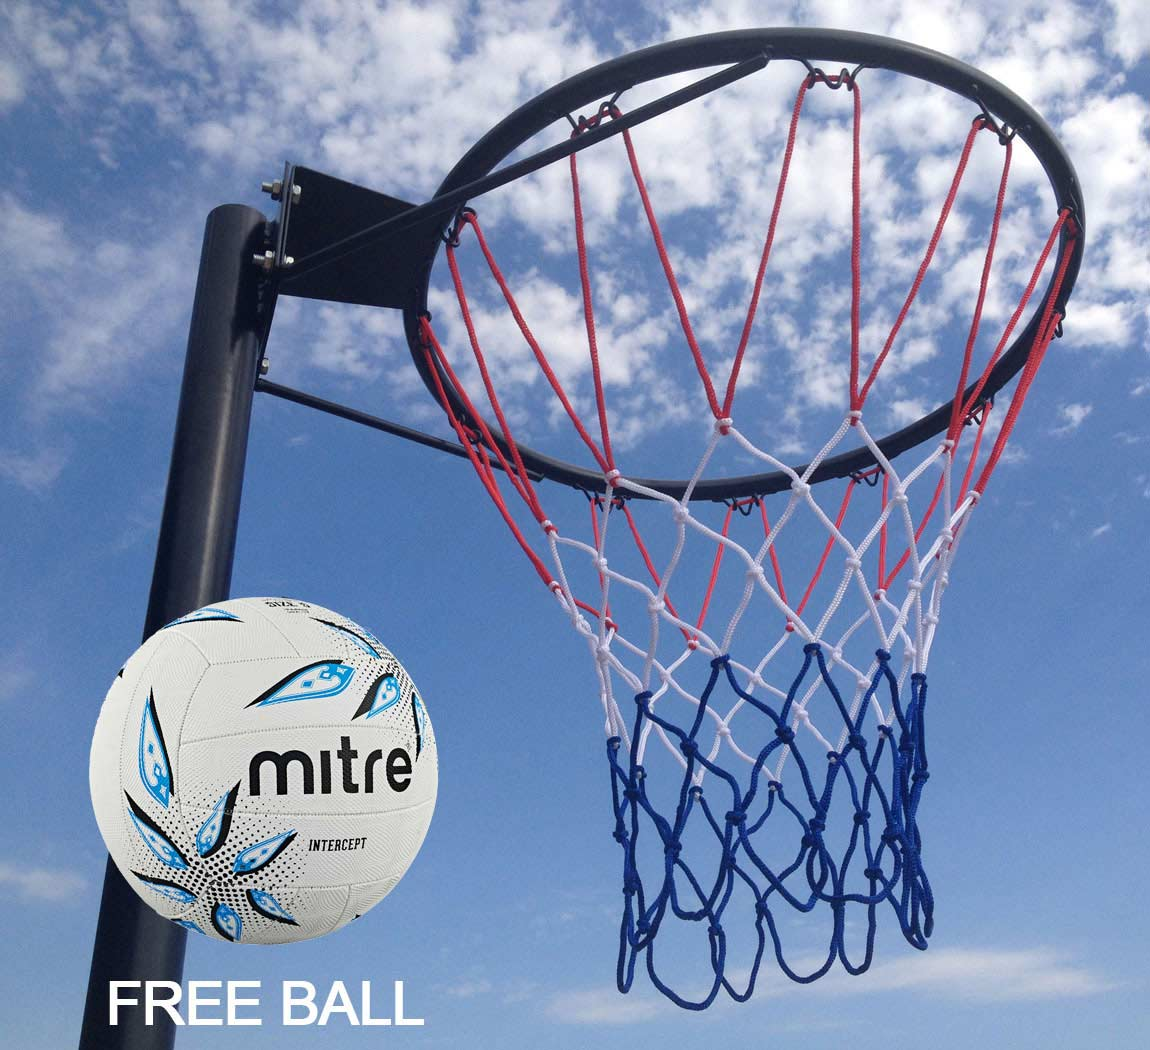 netball court diagram layout les paul wiring push pull croquet rules related keywords and suggestions